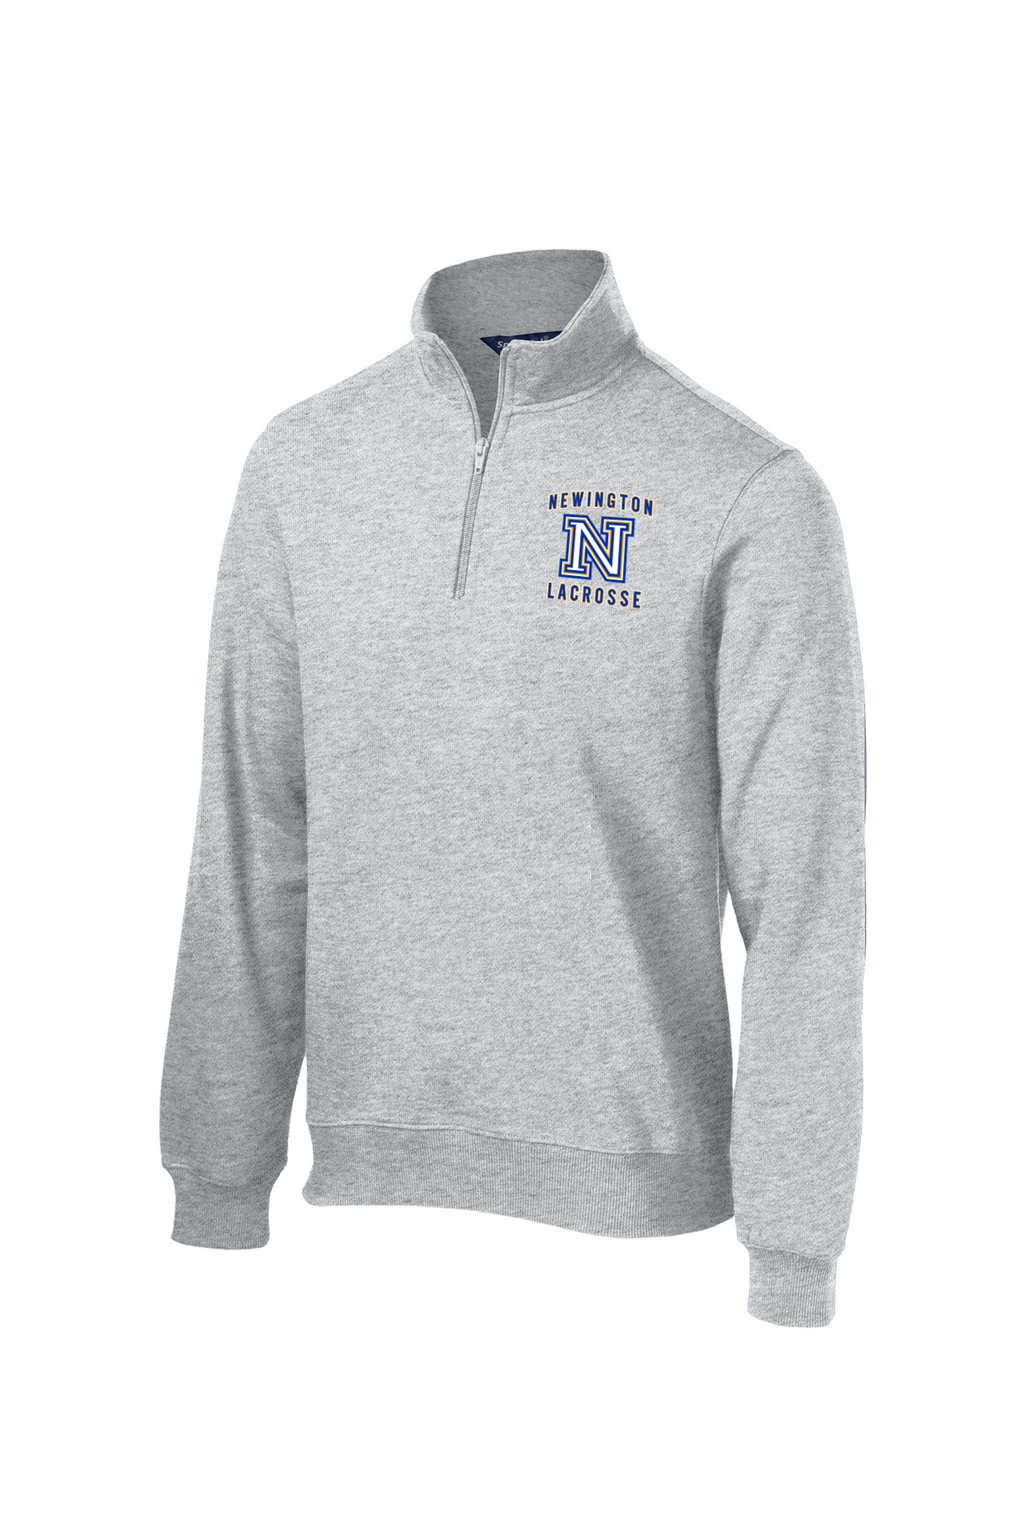 Newington Lacrosse Grey 1/4 Zip Fleece